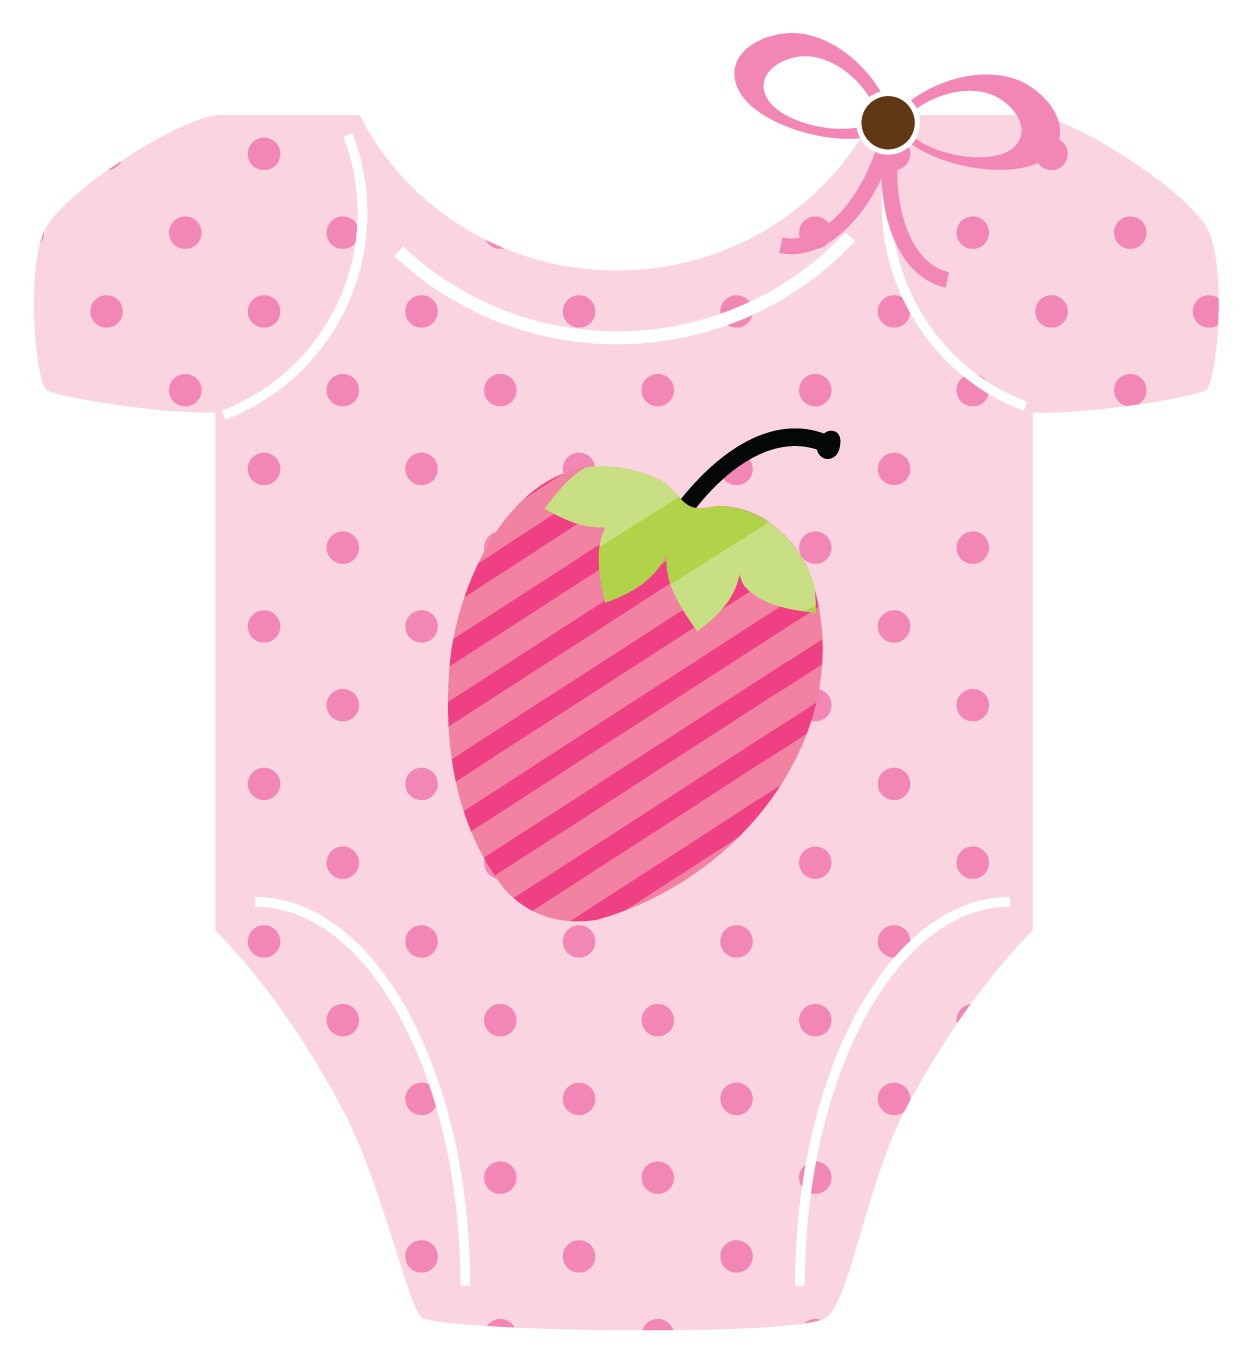 Girl Clothes Clipart at GetDrawings.com.